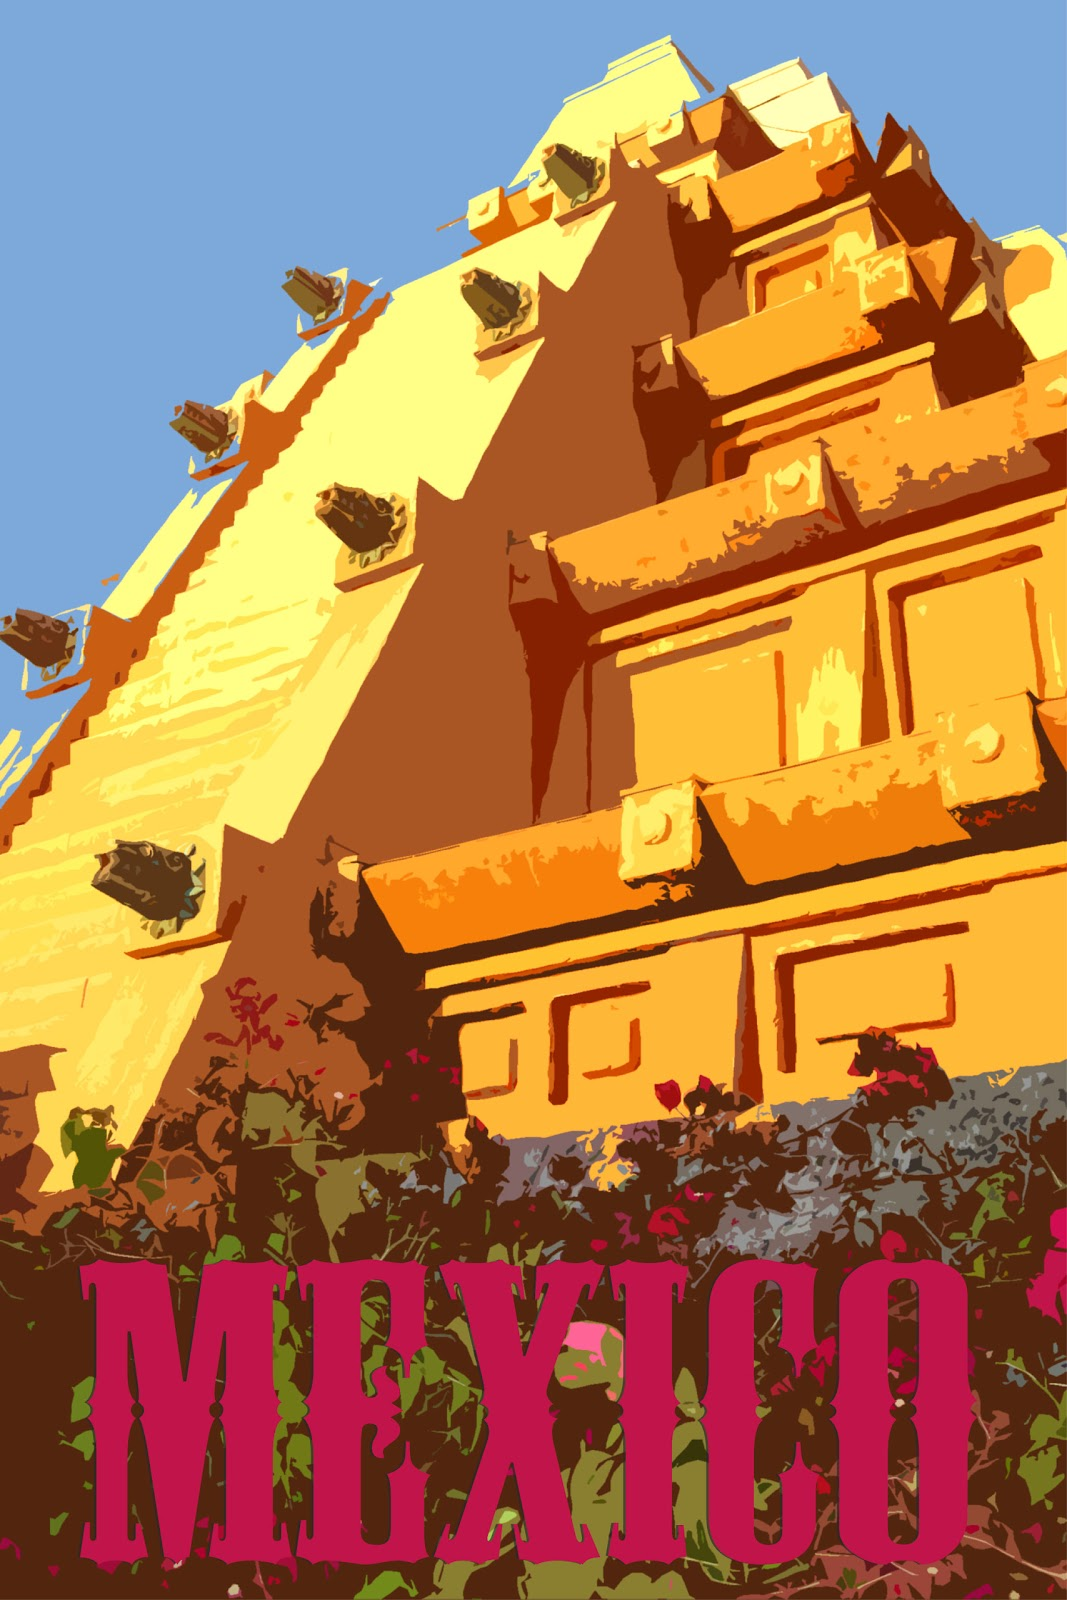 Brian's Daily Ramblings & Artistic Endeavors: Mexico Travel Poster